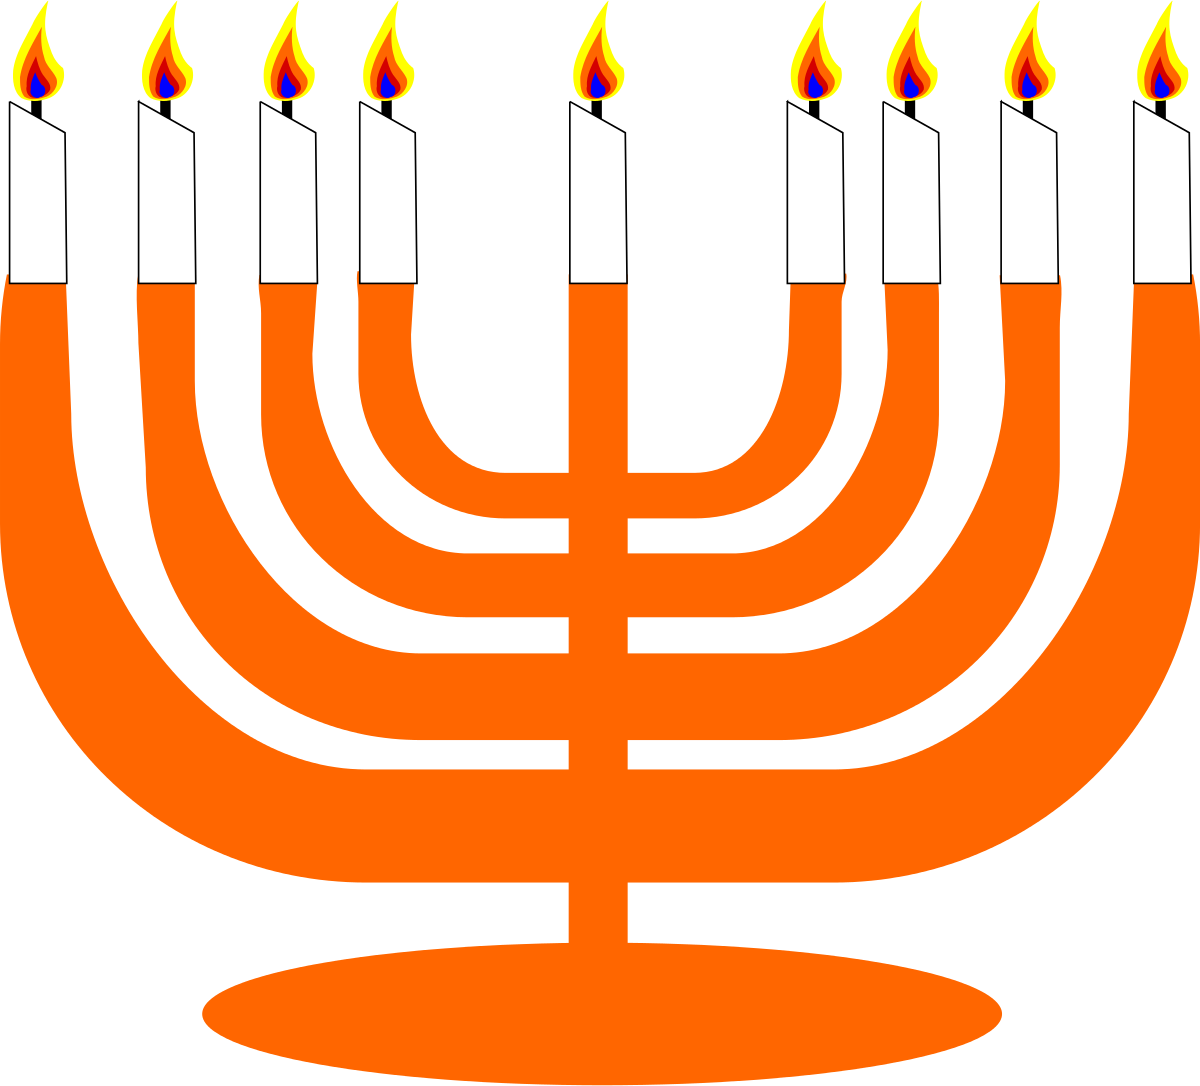 Hanukkah clipart hanukkah kid. Free images of download